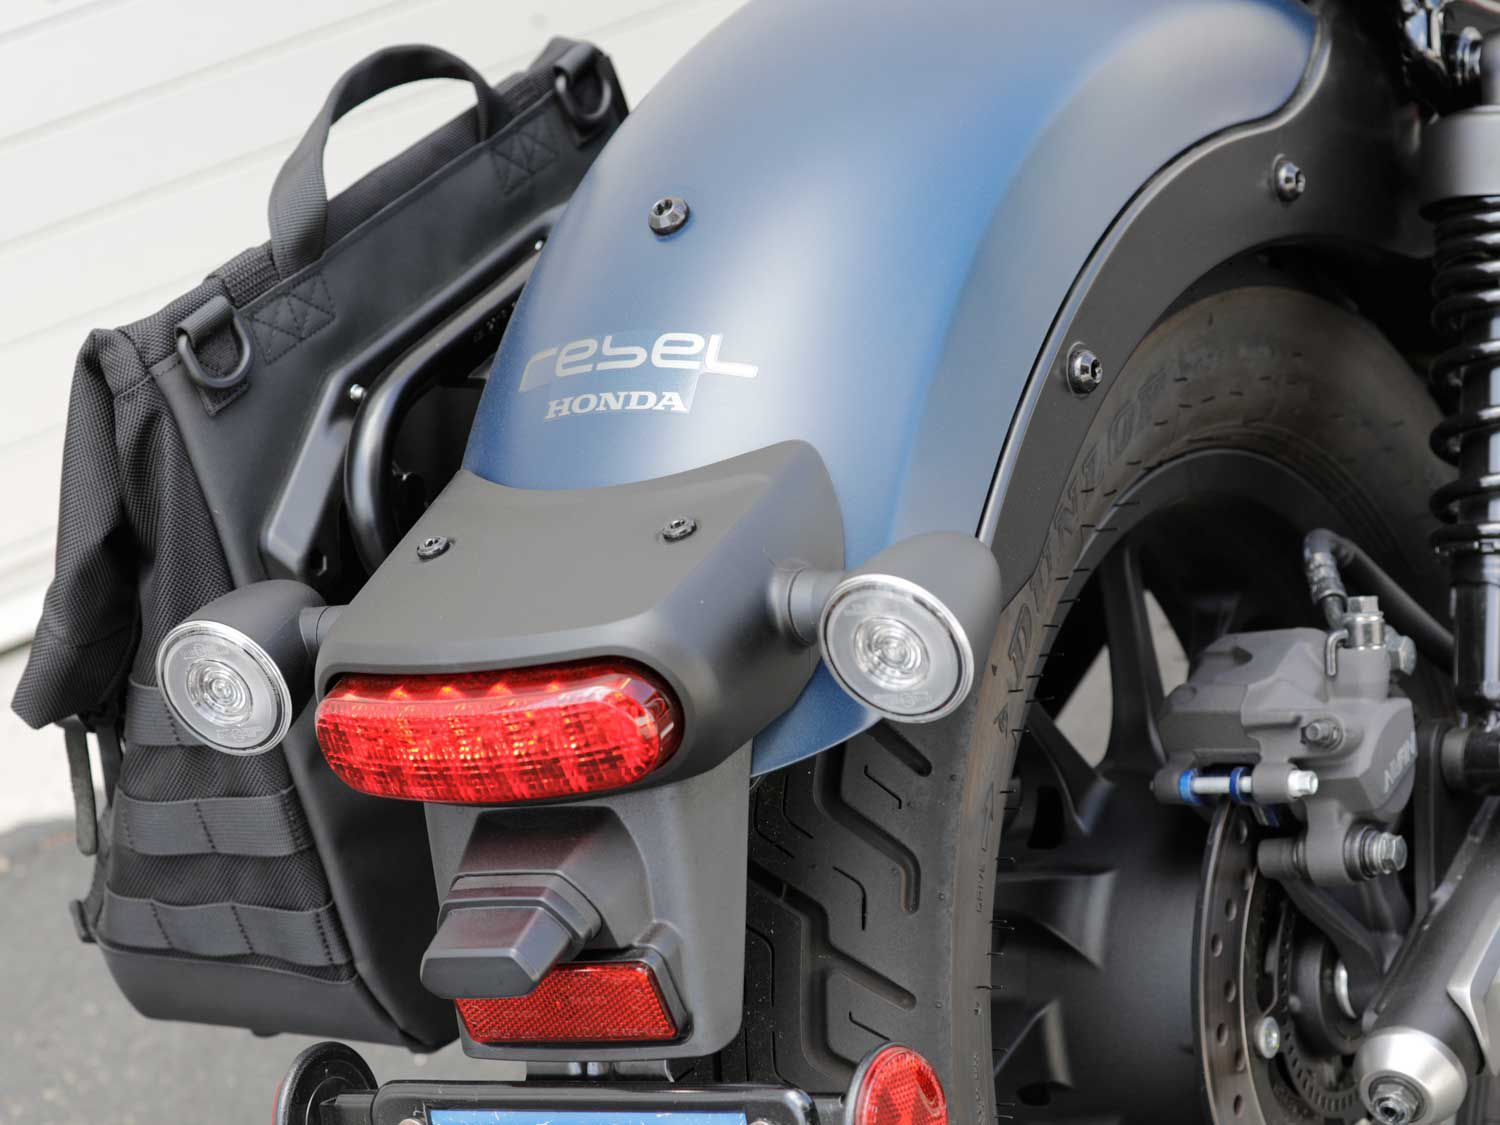 The Honda Rebel 500 ABS is outfitted with full LED lighting which helps it stand out on the road. We like the attention to detail, including the round-shaped turn signals.